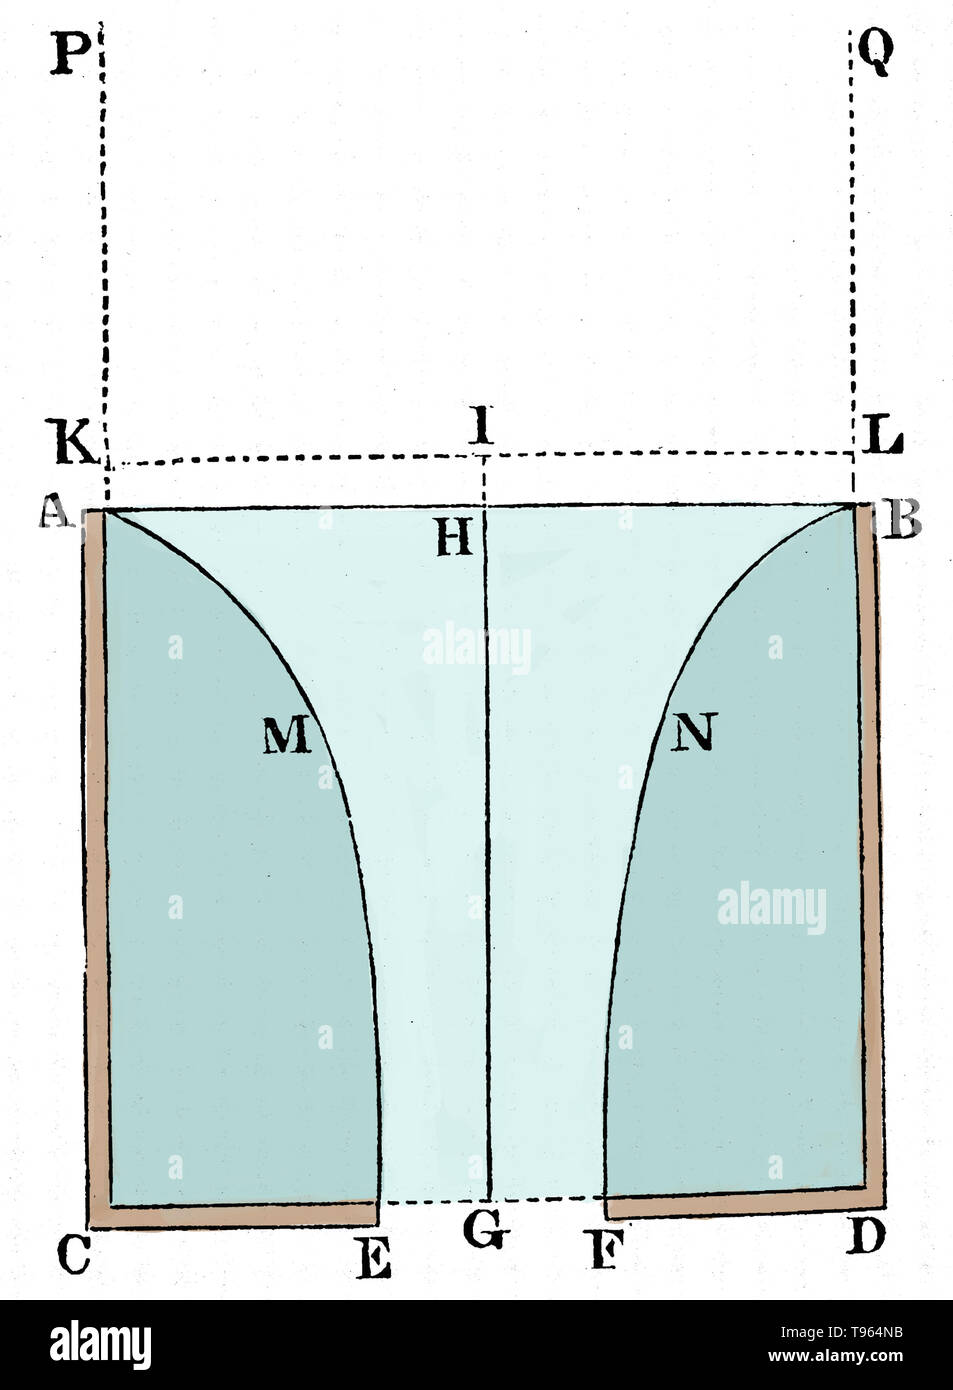 medium resolution of a diagram to define the motion of water running out of a cylindrical vessel through a